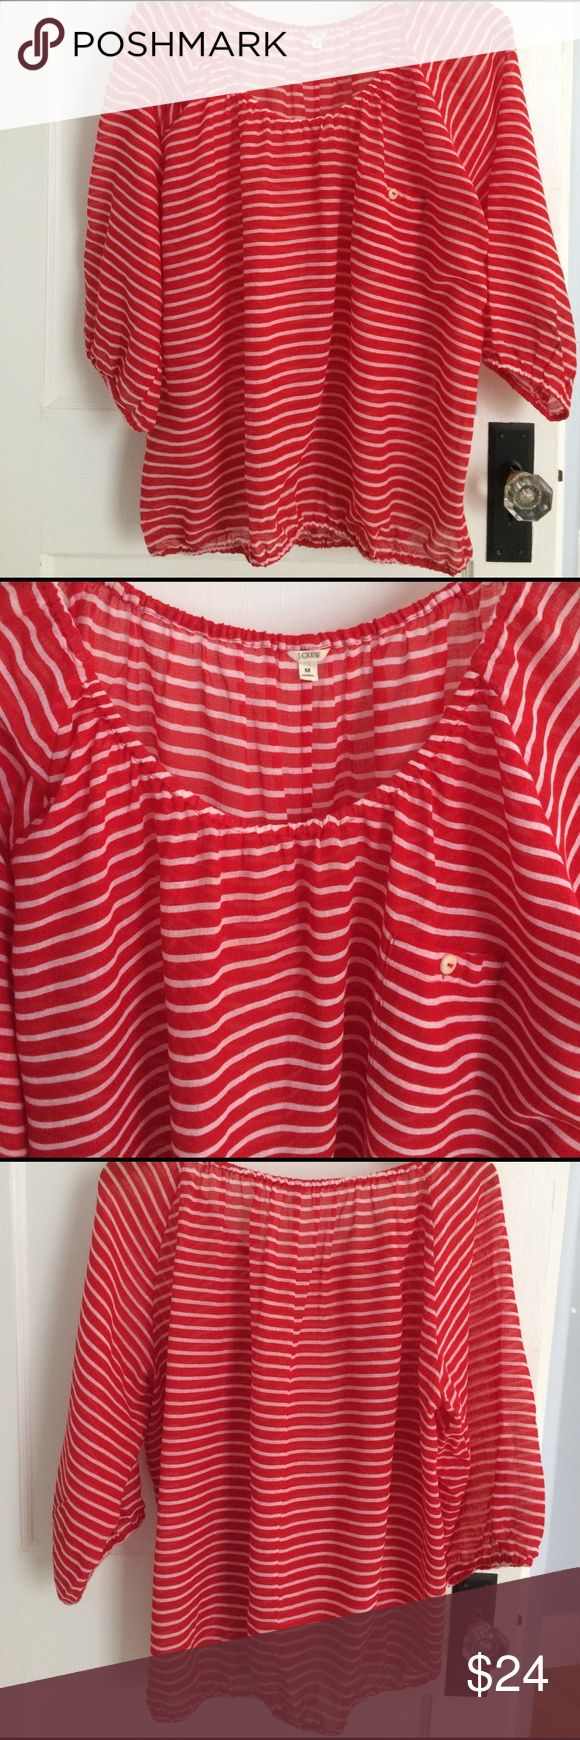 J.Crew Blouse Fresh, summer red stripe popover from J.Crew. Breezy, light weight cotton with elasticized cuffs and bottom. It is a bit sheer, so you might be most comfortable wearing with a tank. Still able to wear with just a nude bra. There is one tiny snag (as shown in photo) and some seam slippage on both bottom sides. Barely noticeable when wearing. Smoke free home, no trades. Color for sale is red/white, shown in navy/white for silo. J. Crew Tops